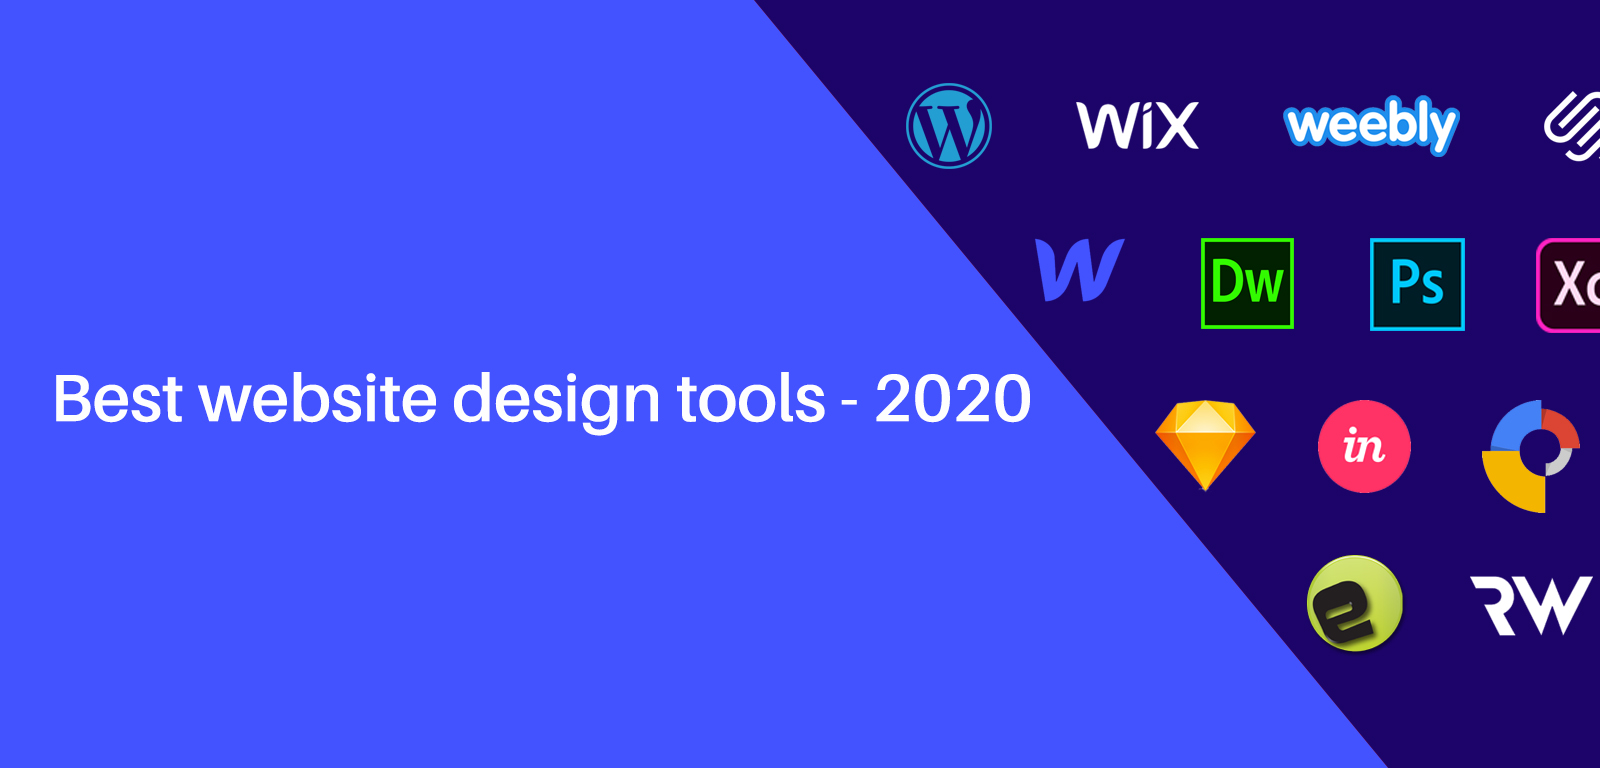 webtools-2020-edit-2